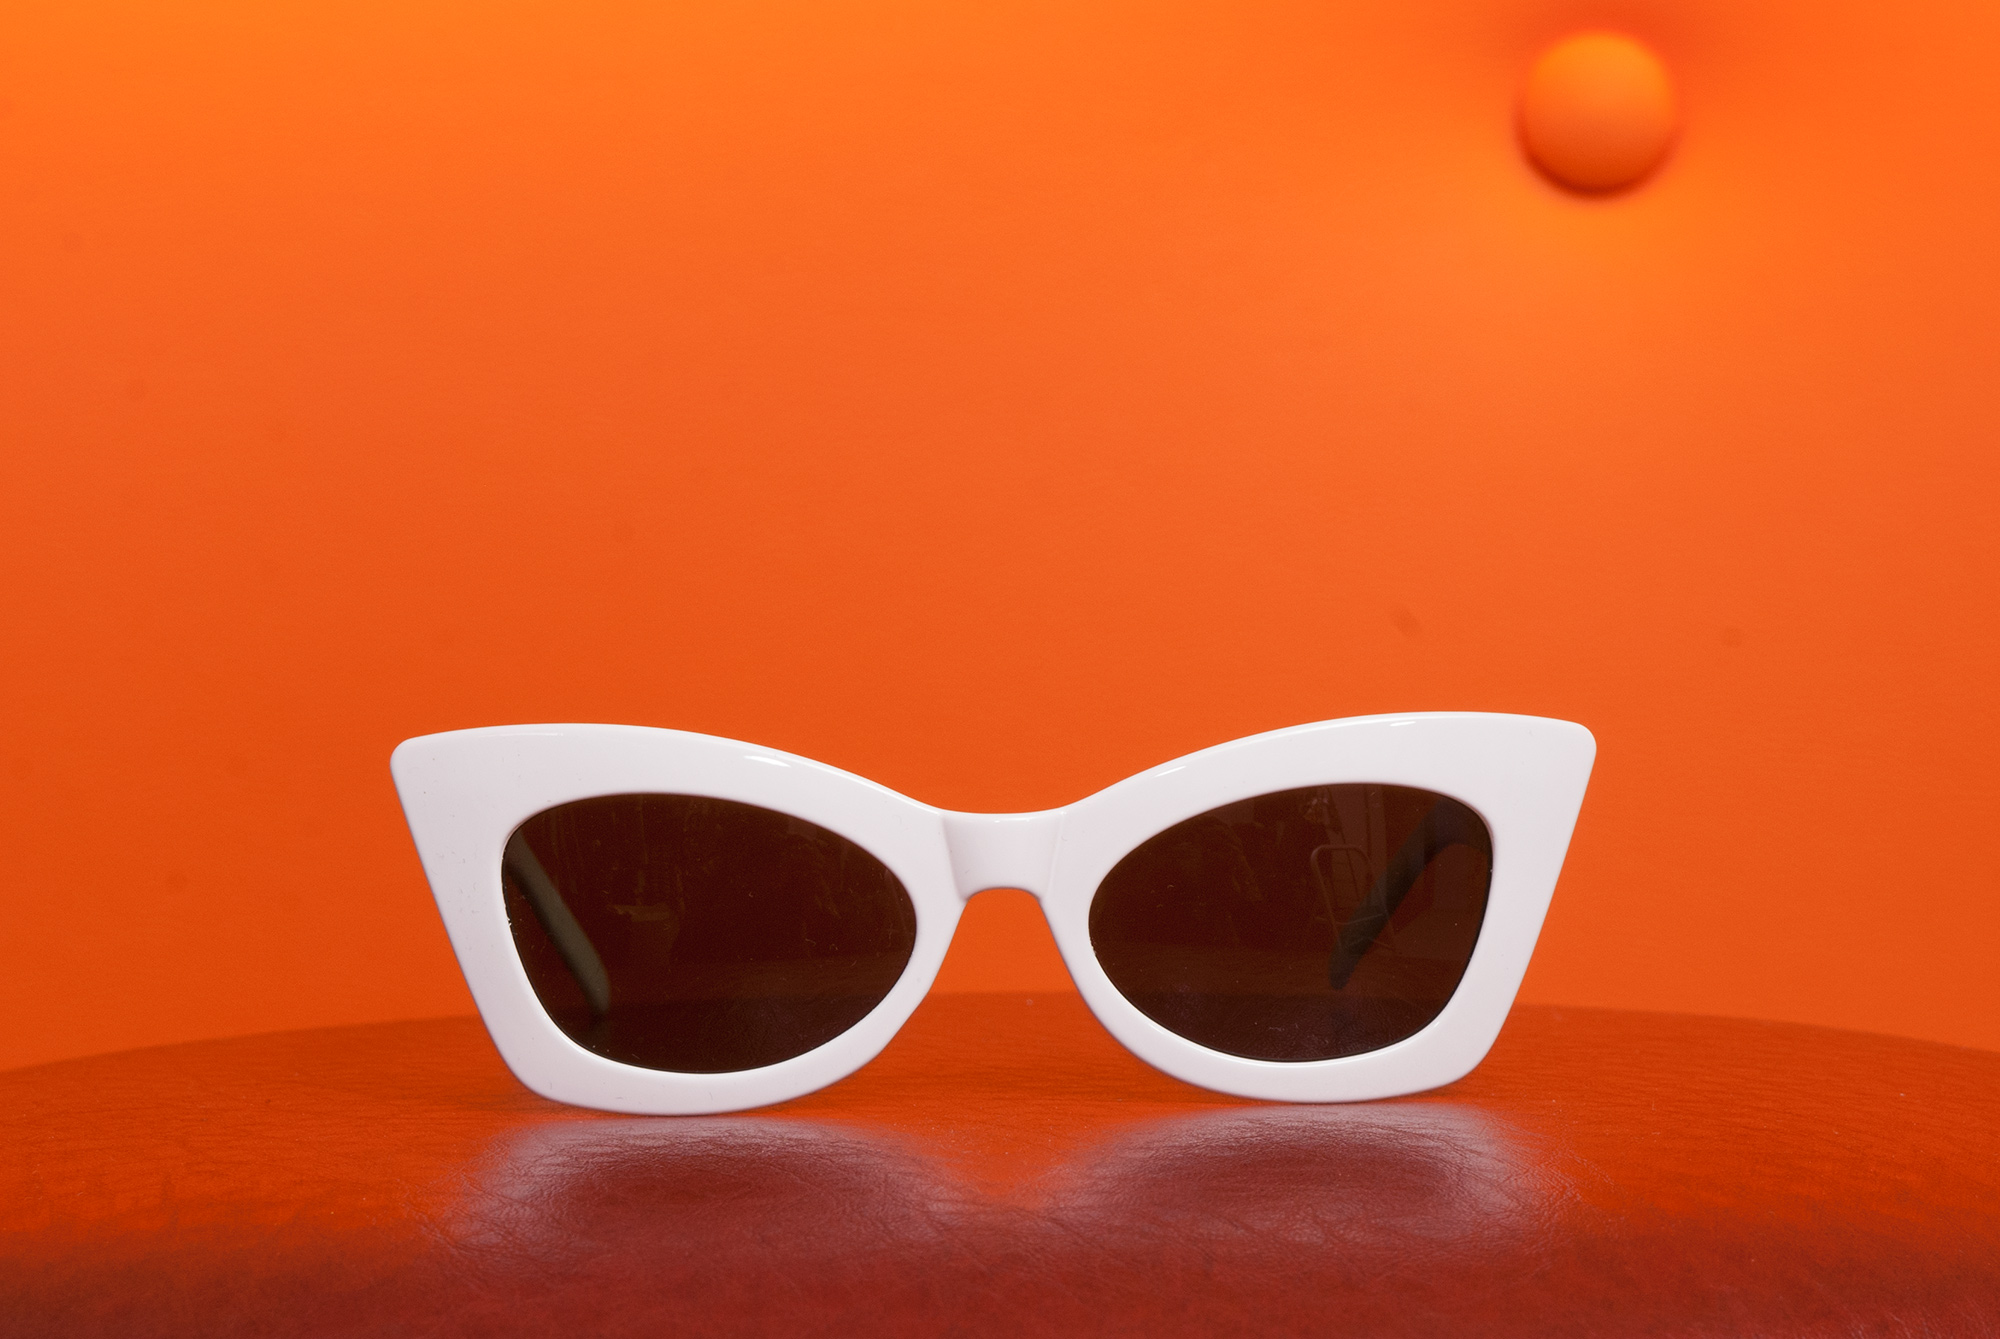 60's Style Psych Rock Shades